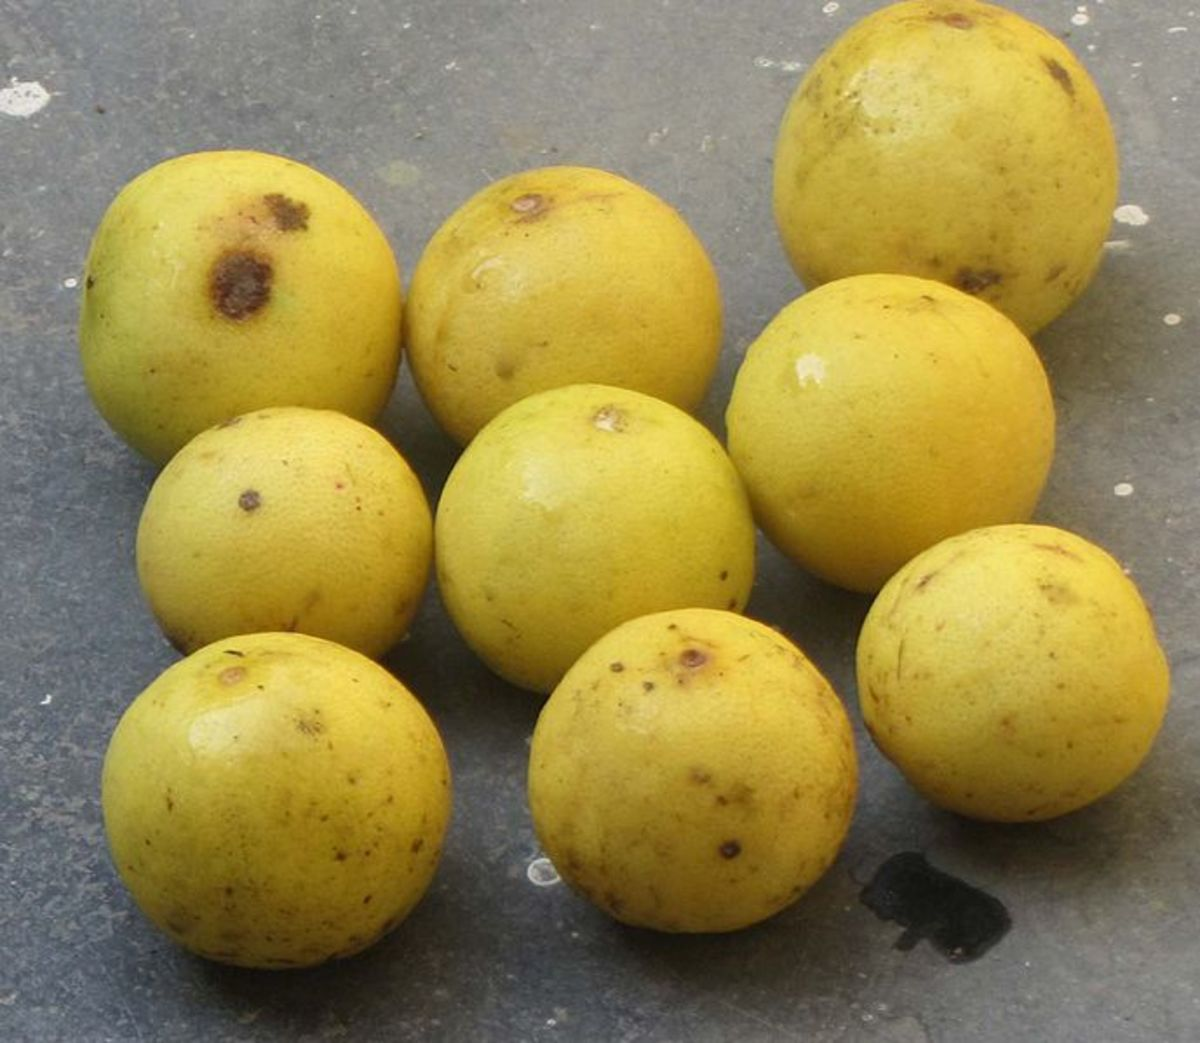 Sengai Podhuvan photographed these lemons in Chennai, Tamil Nadu, India on January 19, 2012. The Indian lemon is more sour and more juicy than the Western lemon.